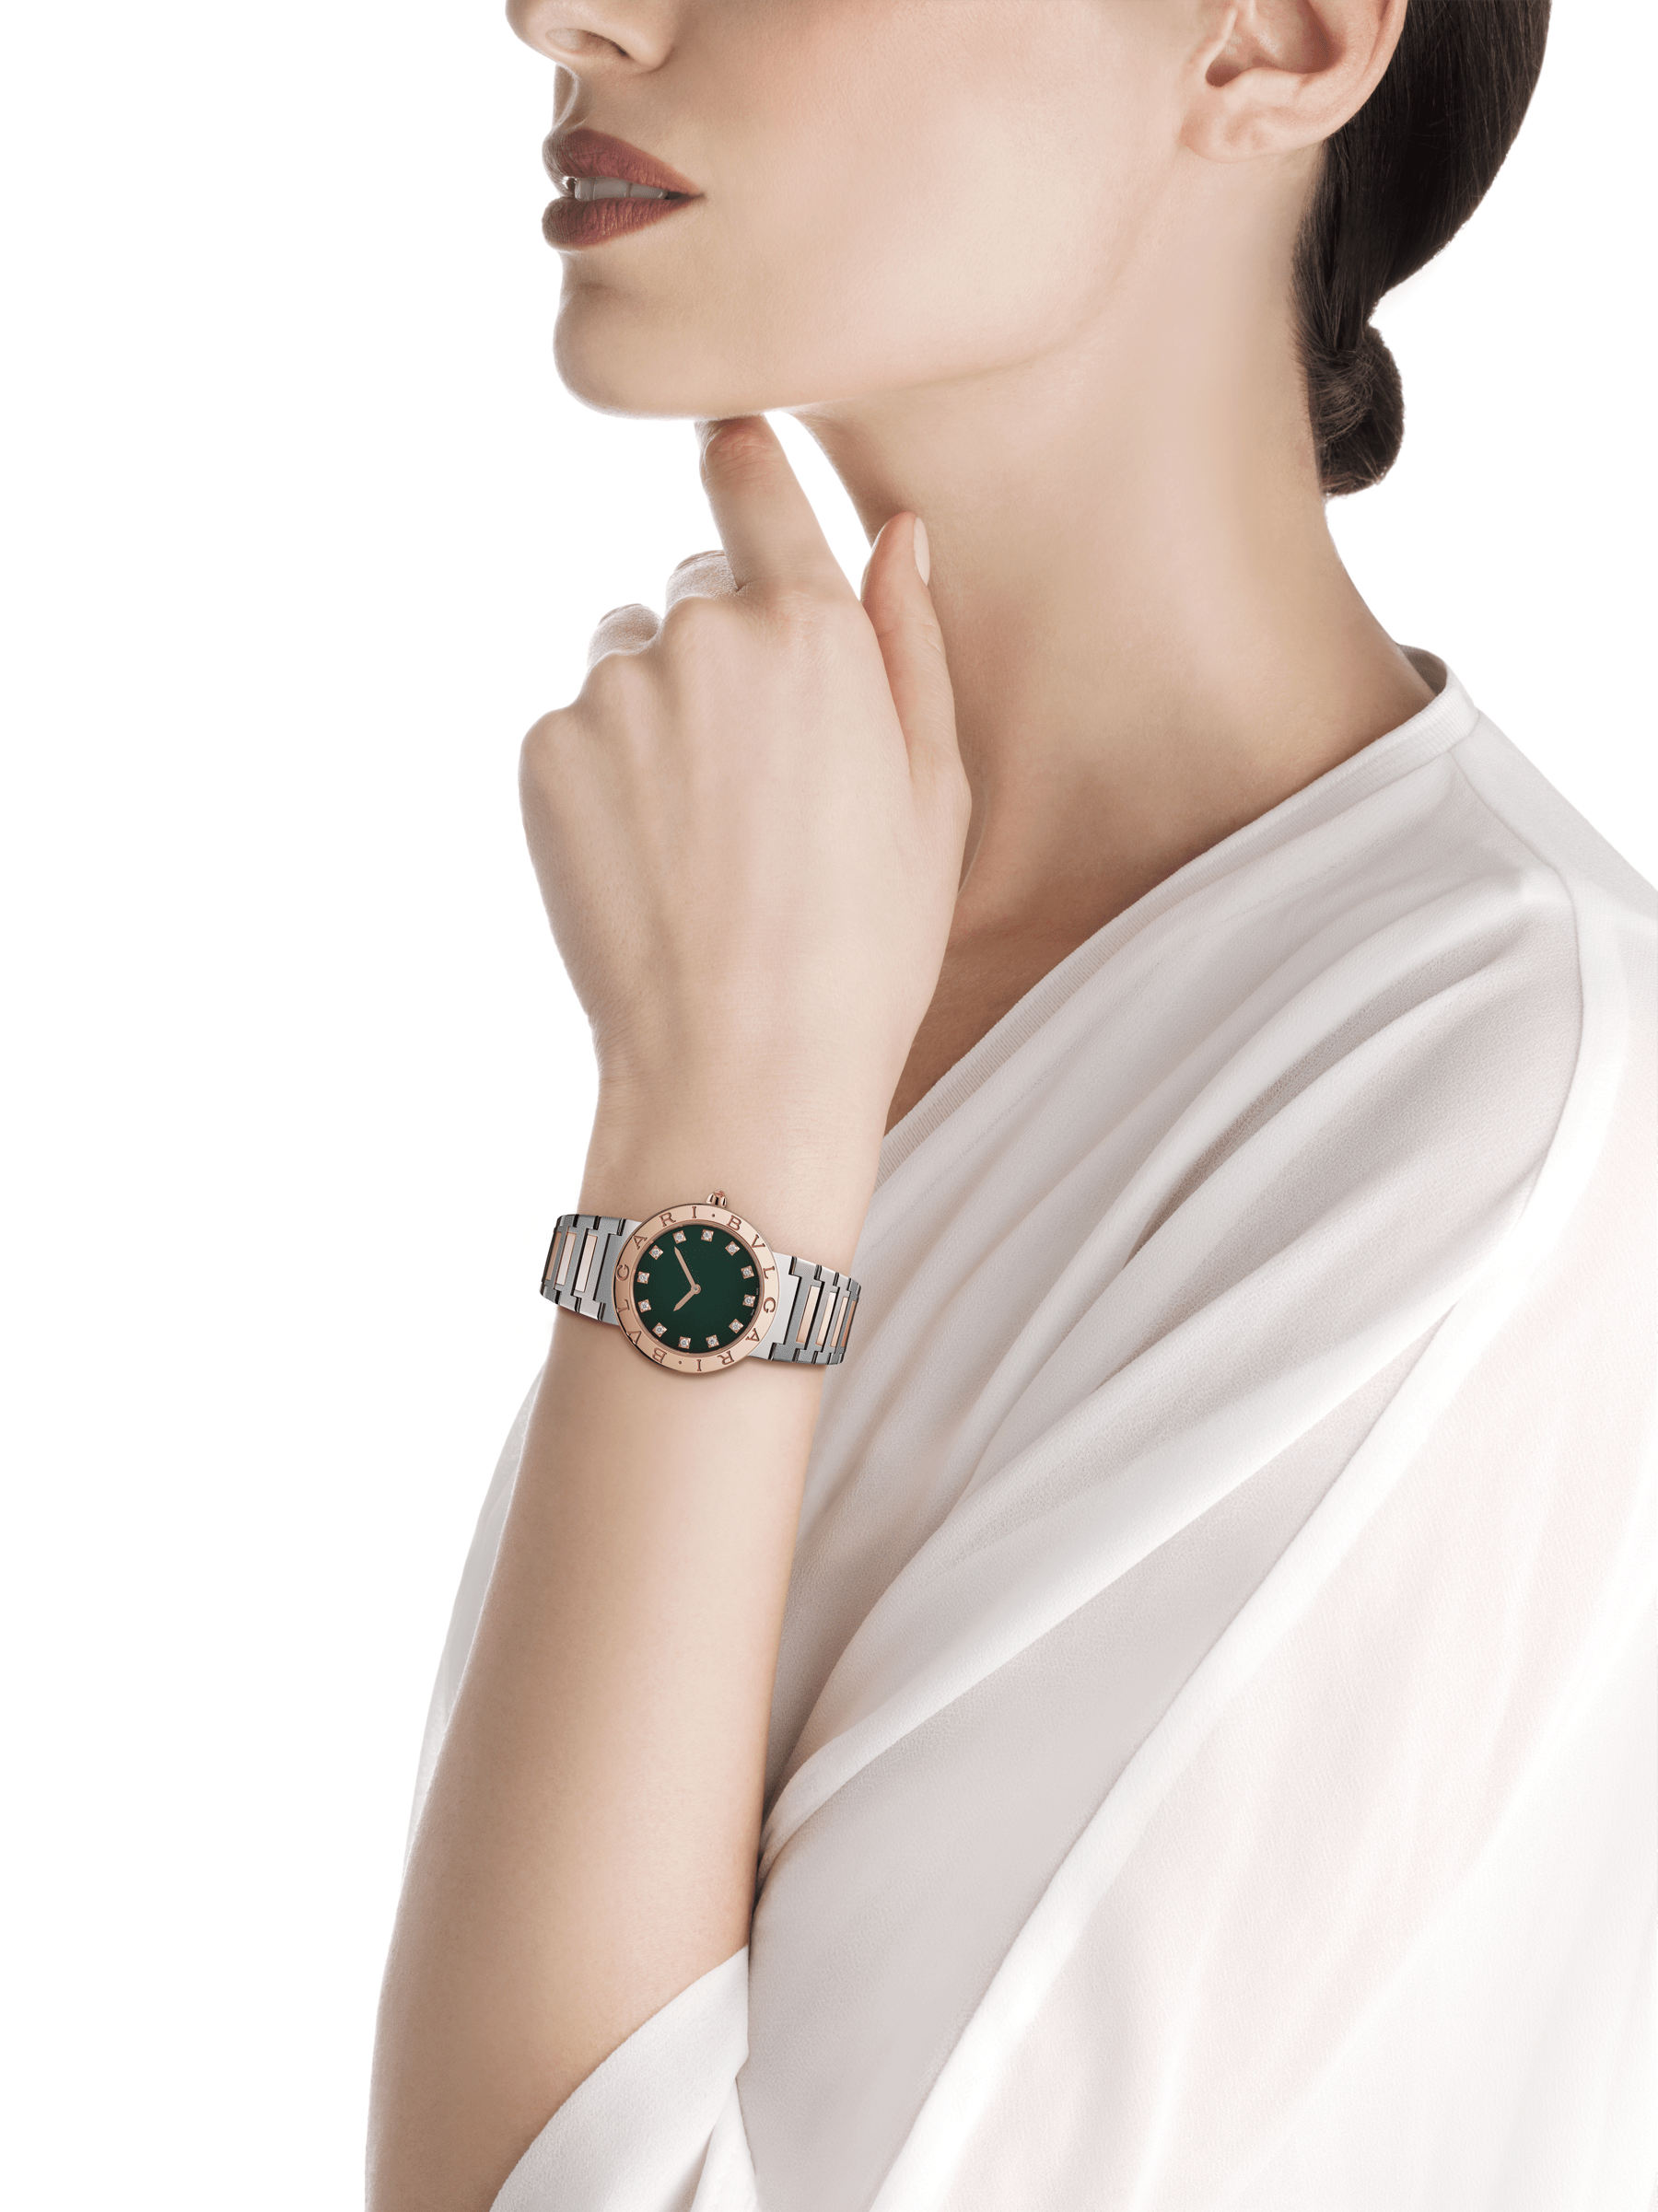 BVLGARI BVLGARI watch in 18 kt rose gold and stainless steel case and bracelet, 18 kt rose gold bezel engraved with double logo, green satiné soleil lacquered dial and diamond indexes 103202 image 4